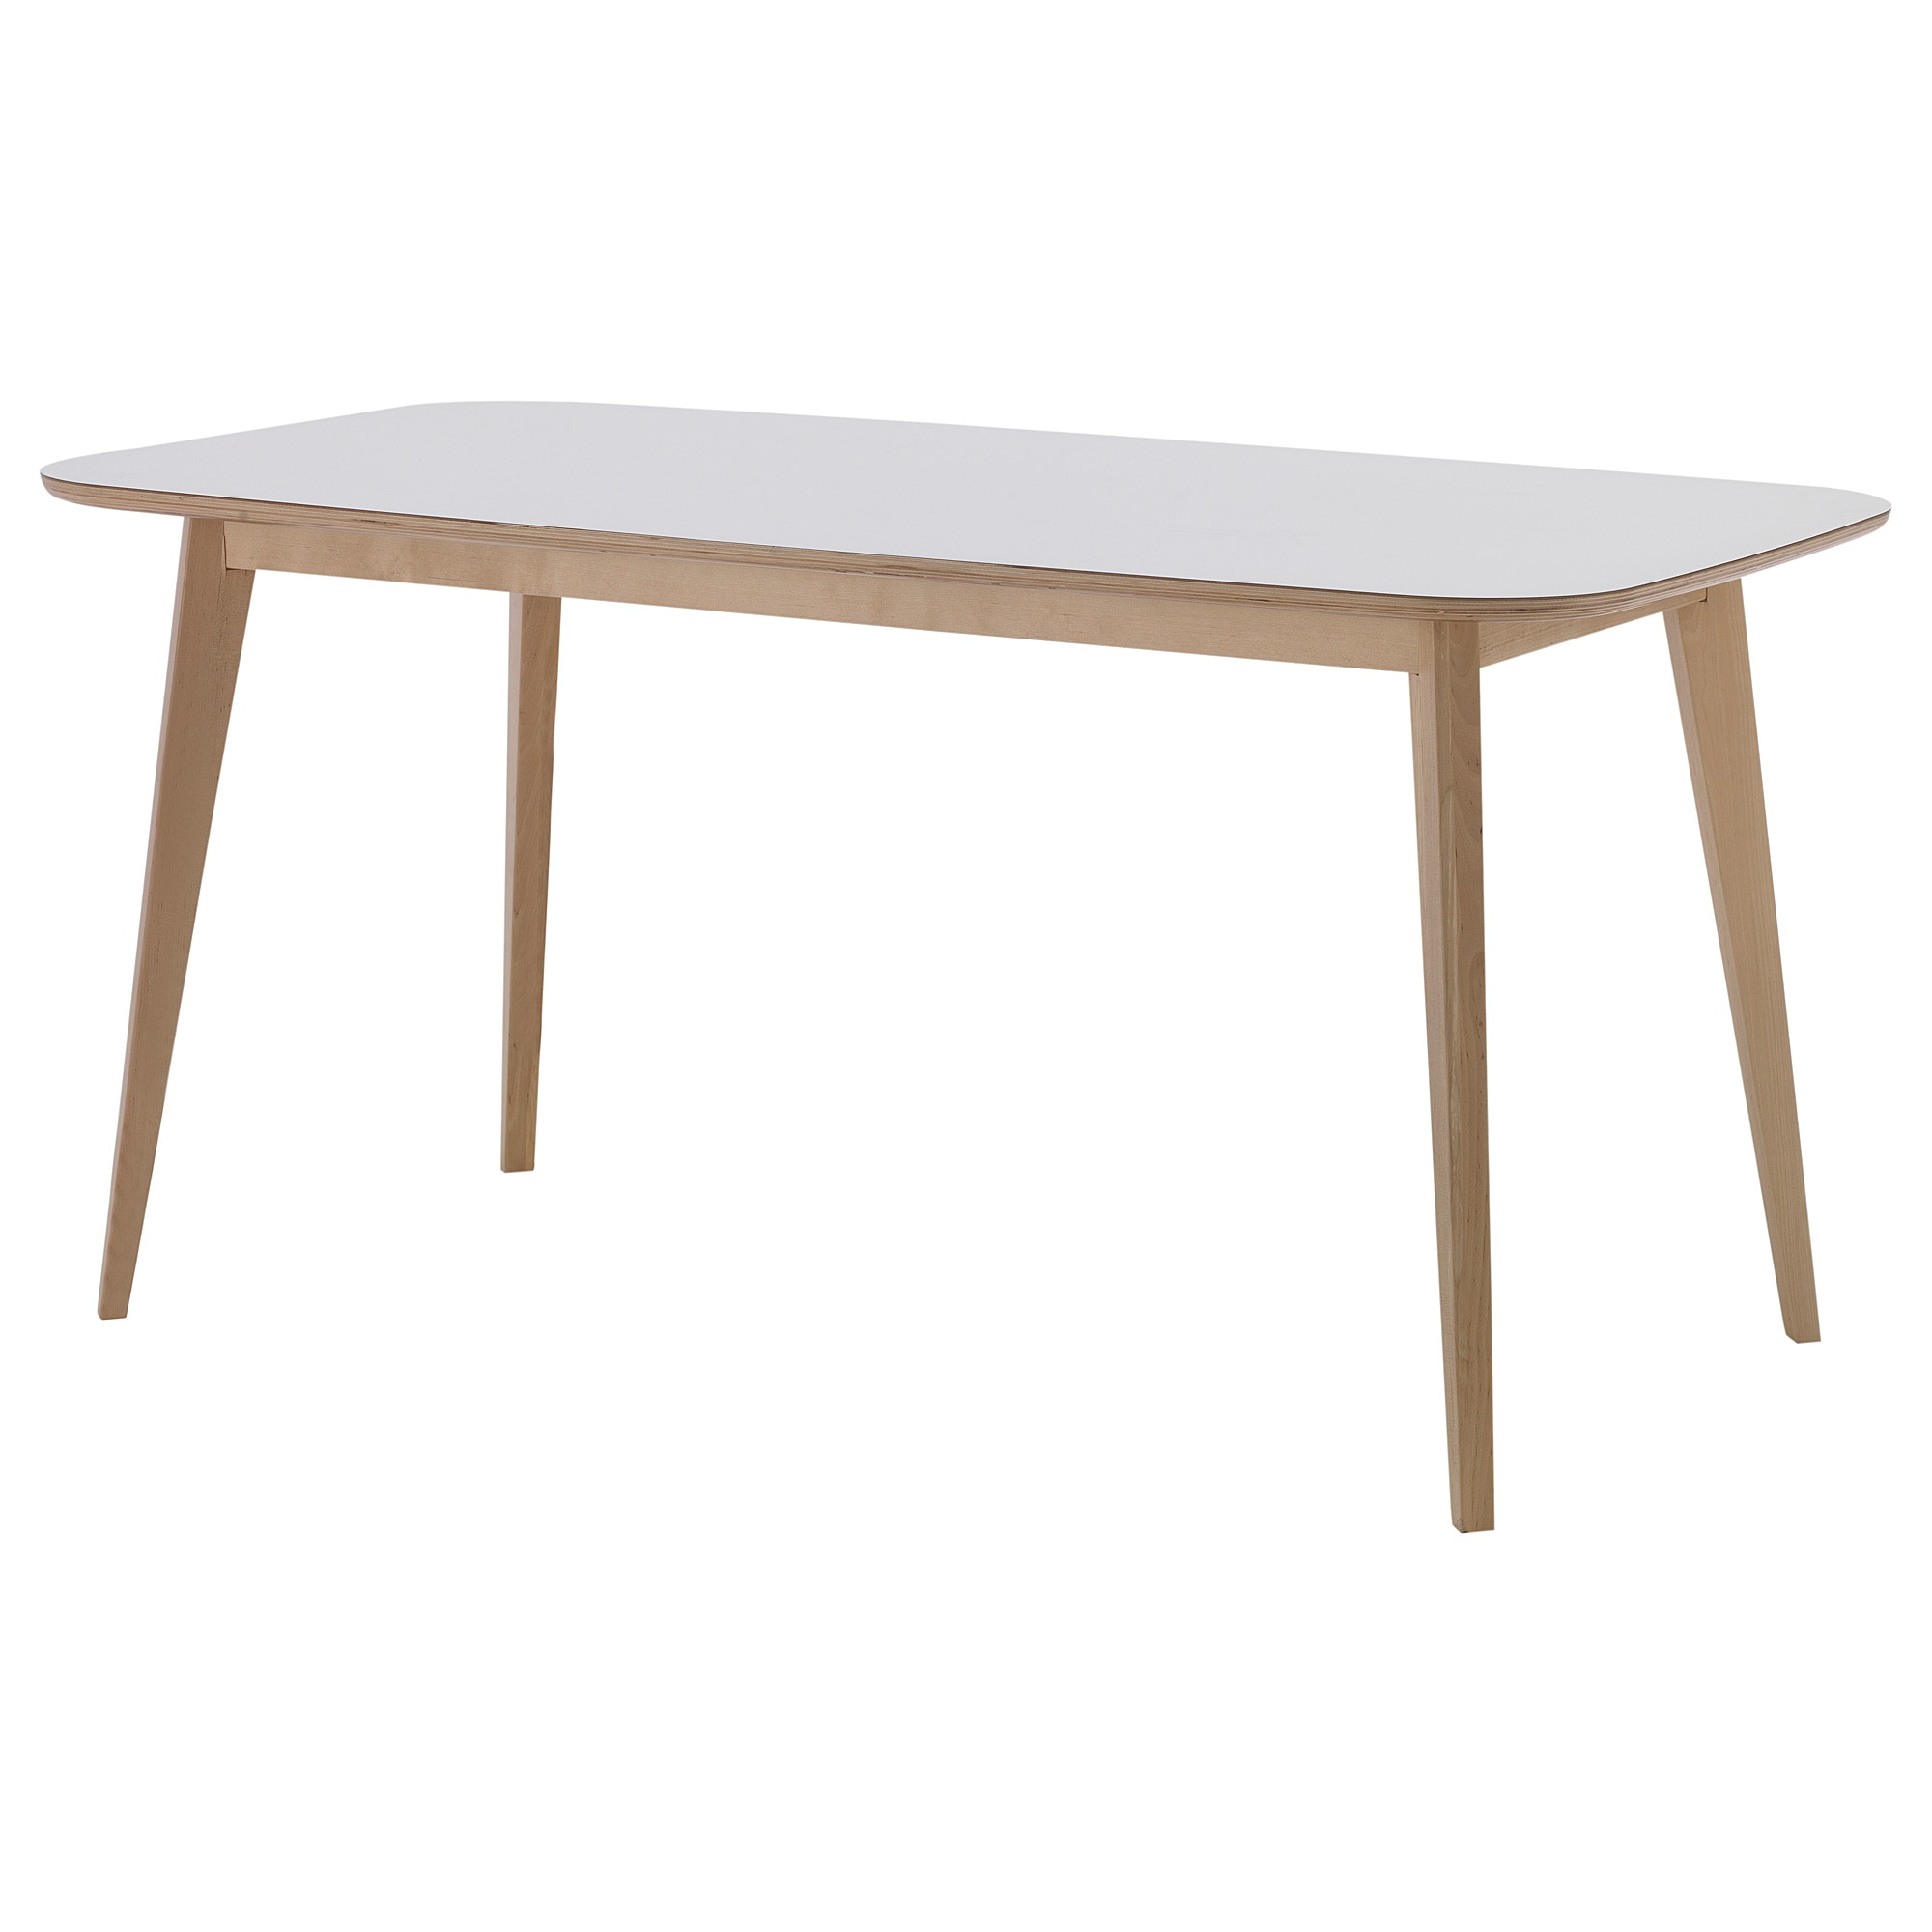 NORDMYRA Table - IKEA